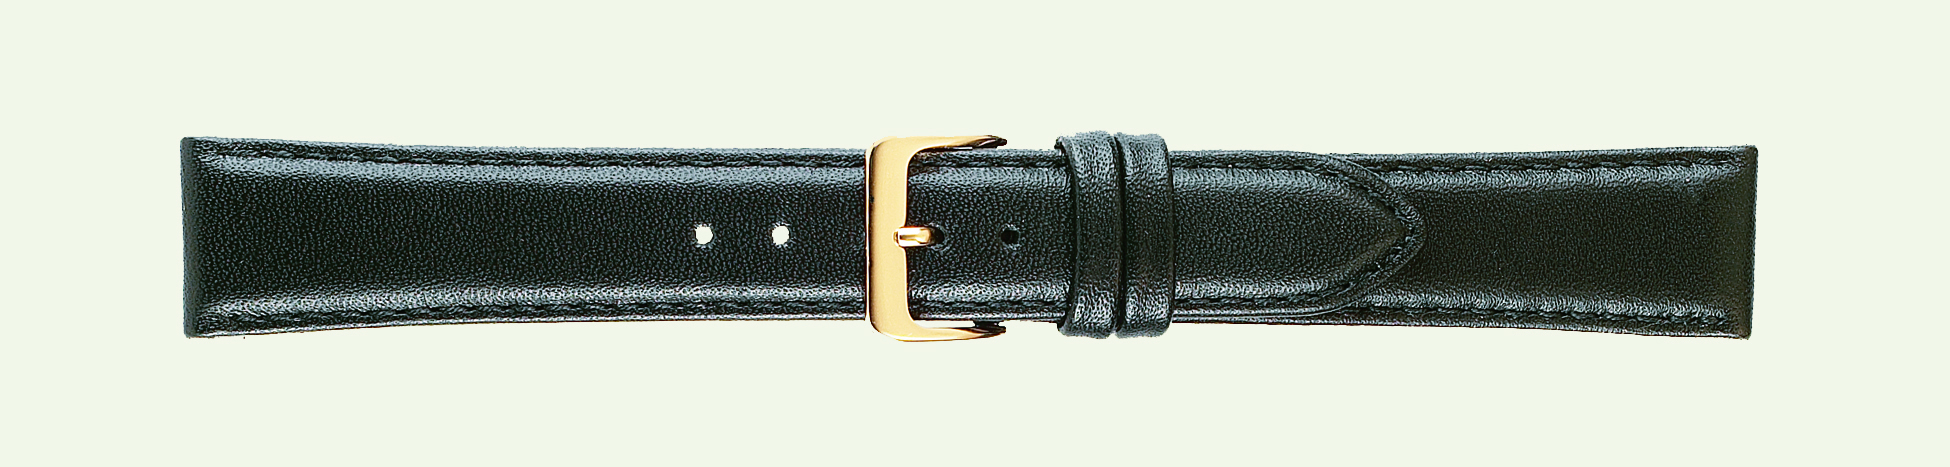 18MM Leather Band Brown Classic Calf Extra Long-0